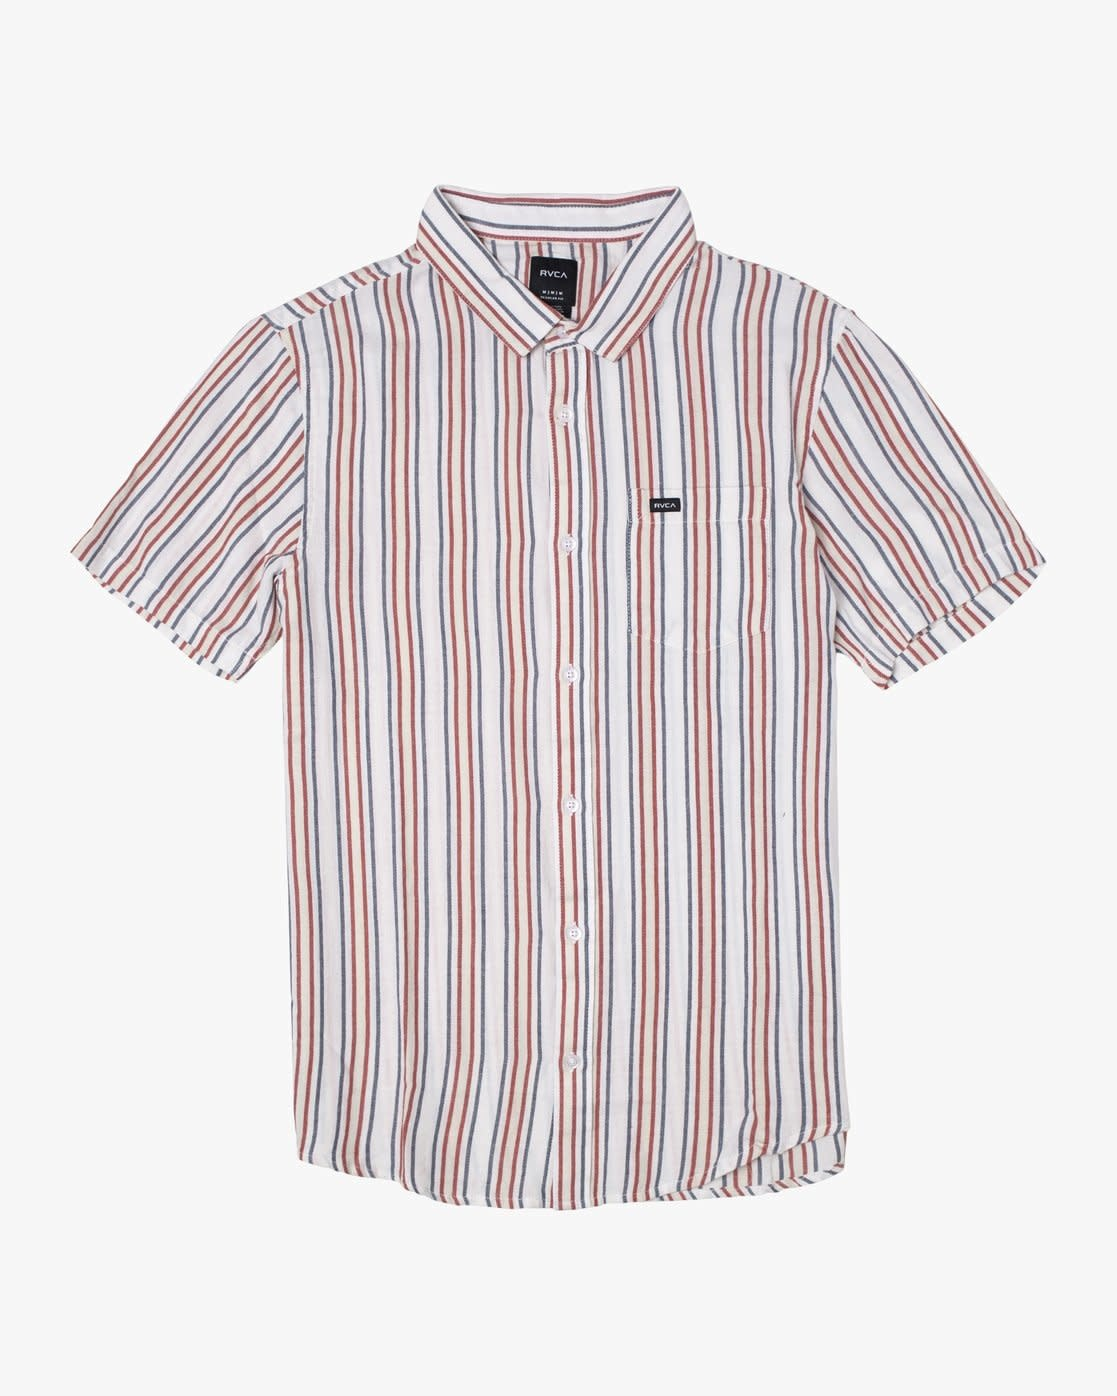 RVCA Topper Stripe-1